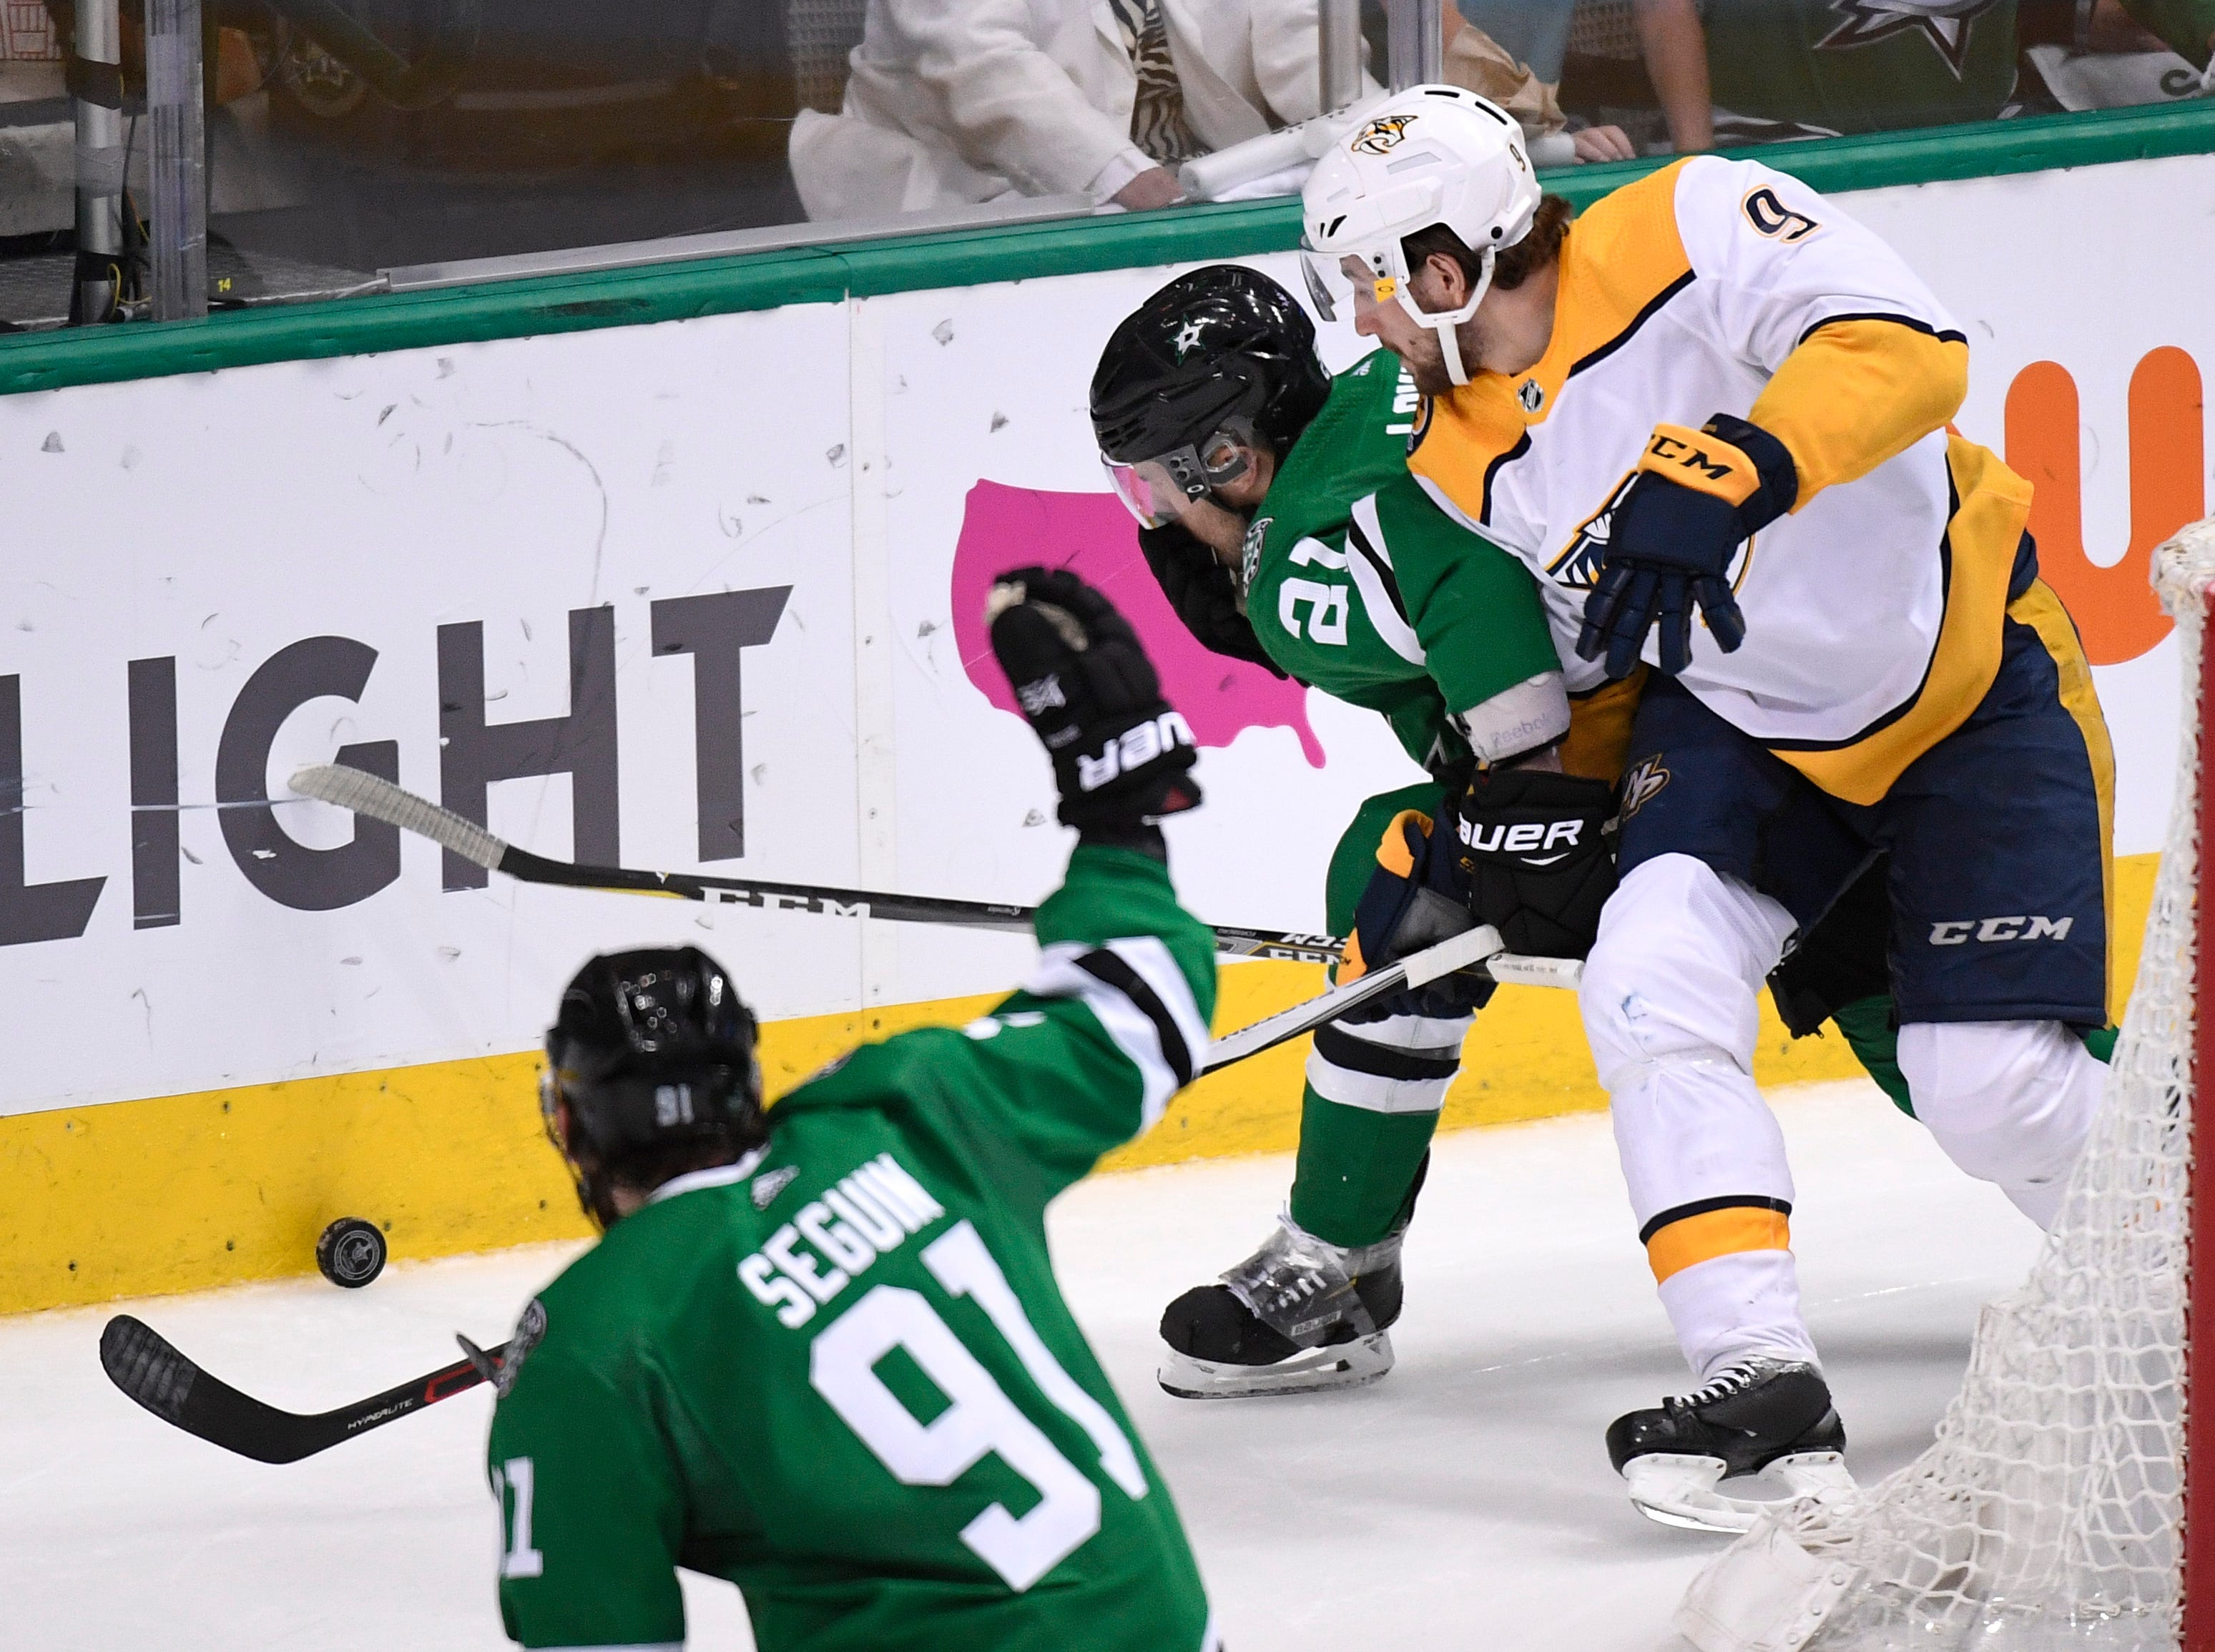 Nashville Predators left wing Filip Forsberg (9) battles for the puck with Dallas Stars defenseman Ben Lovejoy (21) during the second period of the divisional semifinal game at the American Airlines Center in Dallas, Texas, Monday, April 22, 2019.